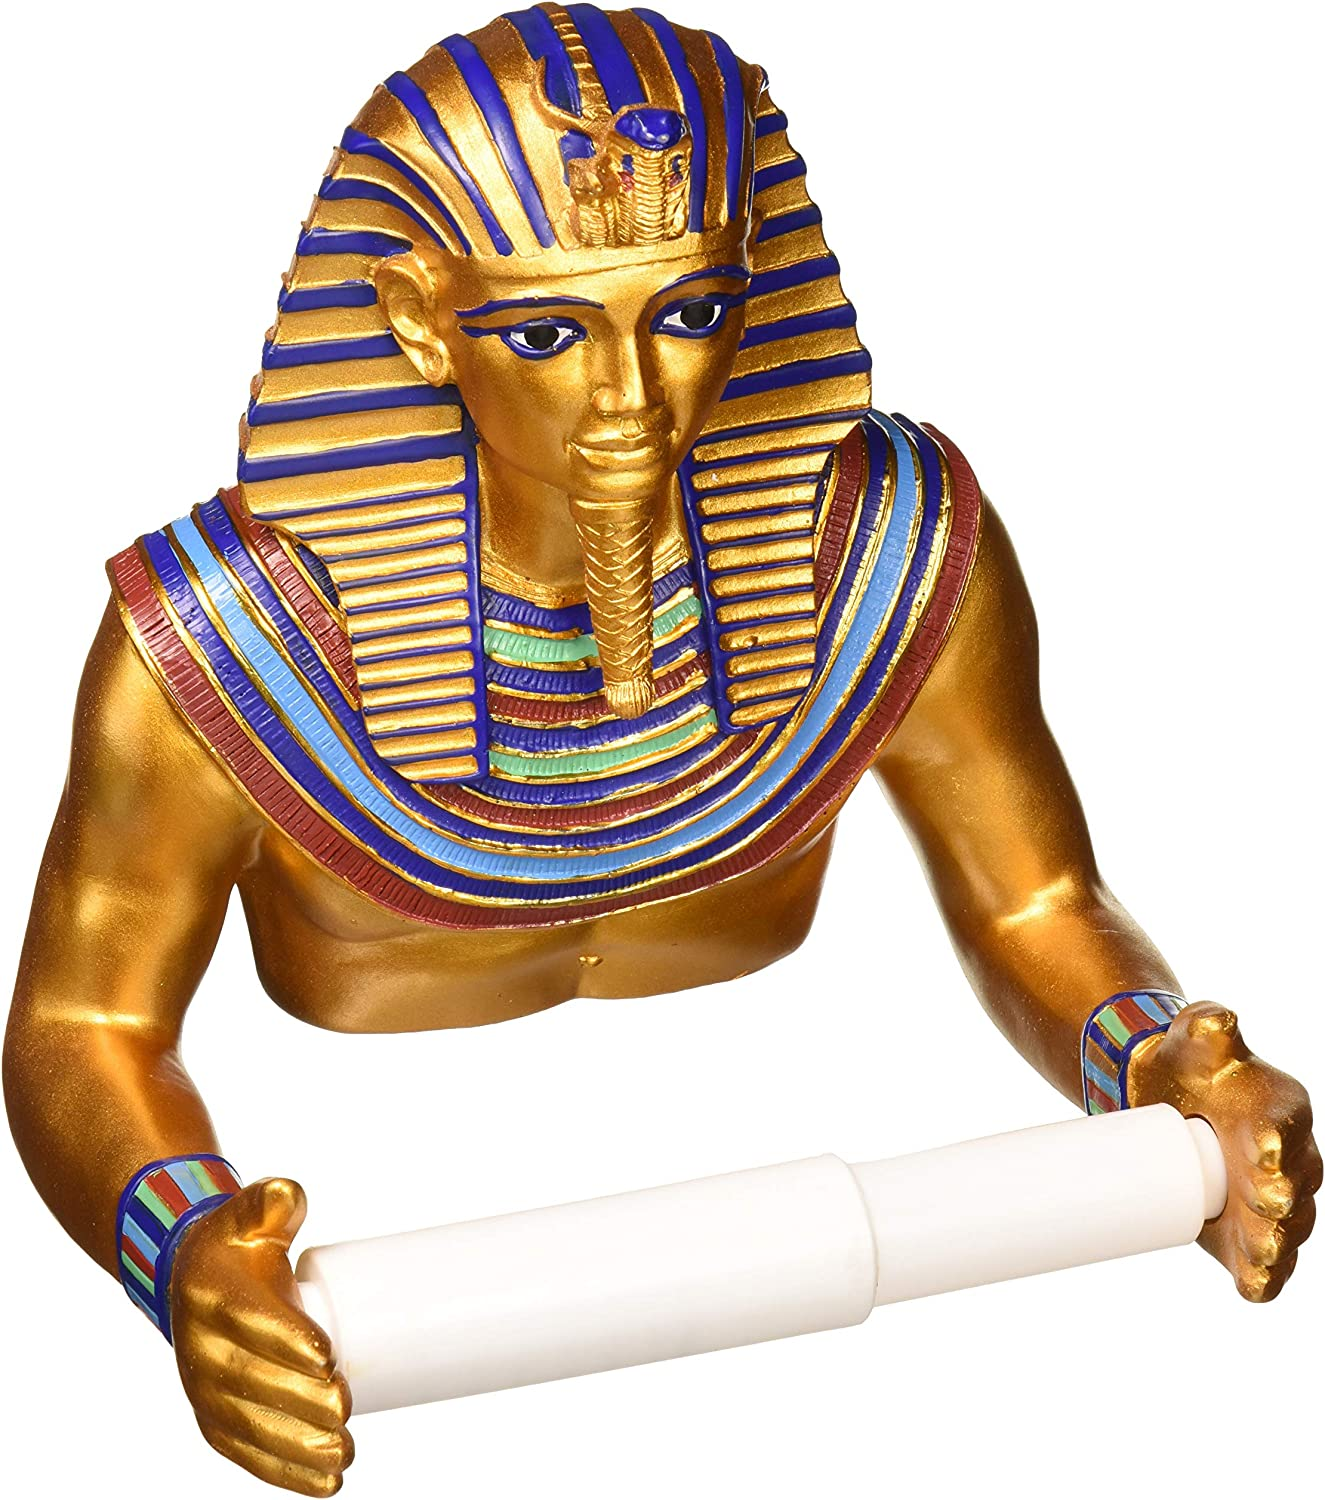 Design Toscano JQ9686 Holder-King Tutankhamen Egyptian Toilet Paper Roll-Bathroom Wall Decor, Multicolor